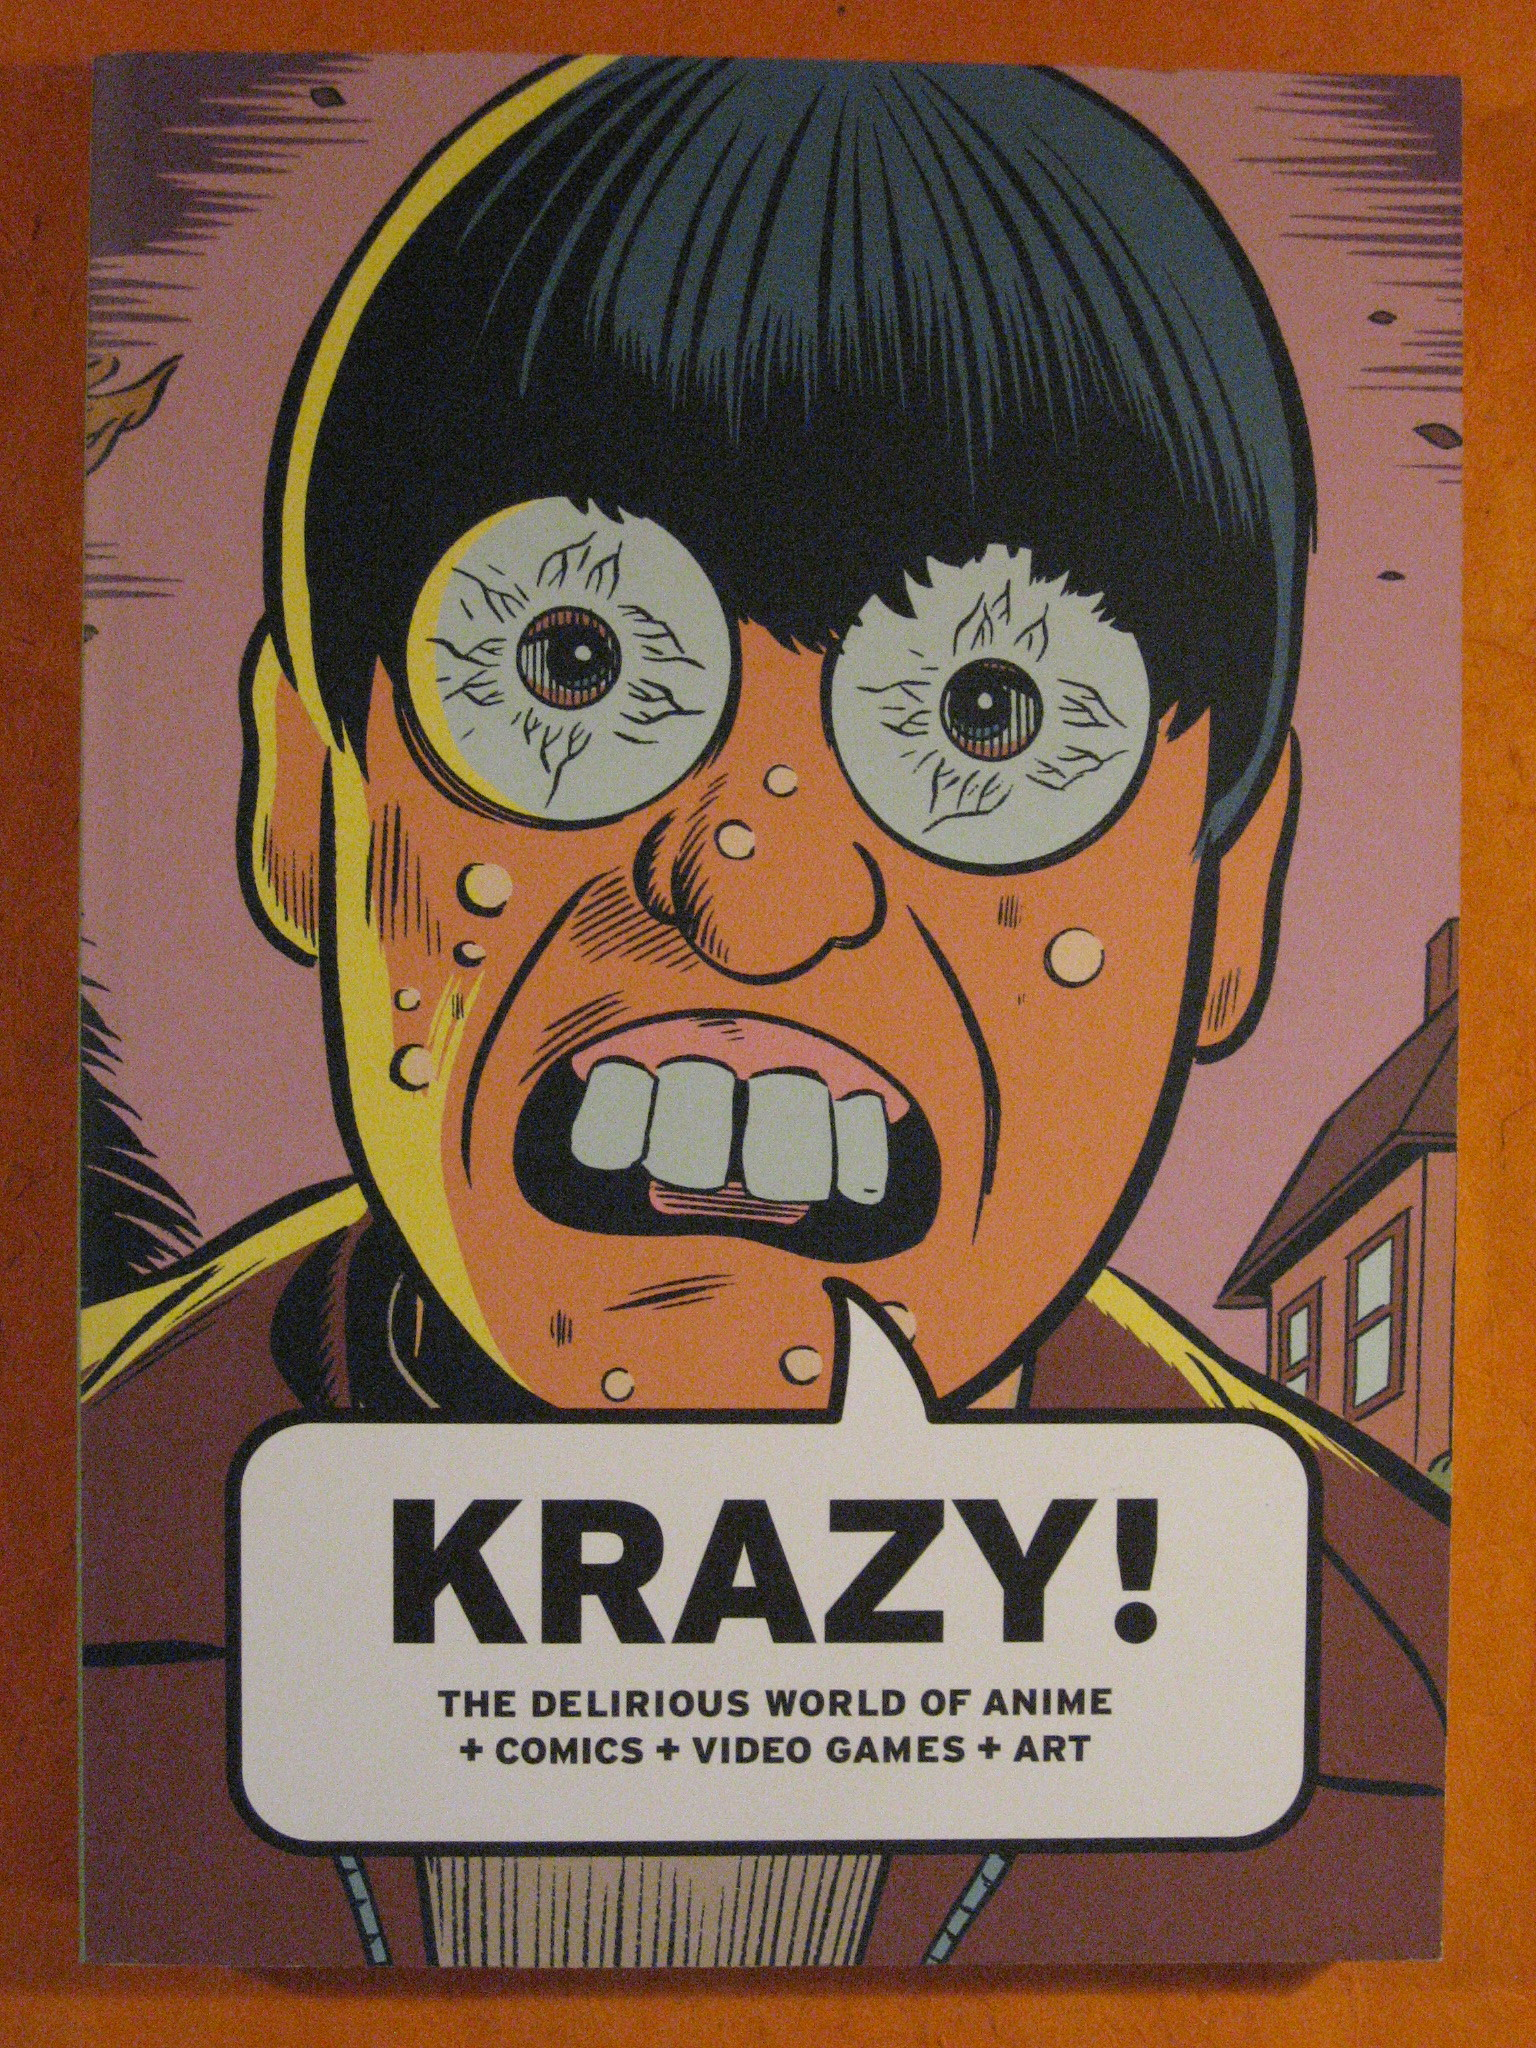 Krazy!: The Delirious World of Anime + Comics + Video Games + Art, Bruce Grenville and Tim Johnson; Spiegelman, Art, Wright, Will; Johnson, Tim; Kiyoshi Kusumi; Ueno, Toshiya, Grenville, Bruce